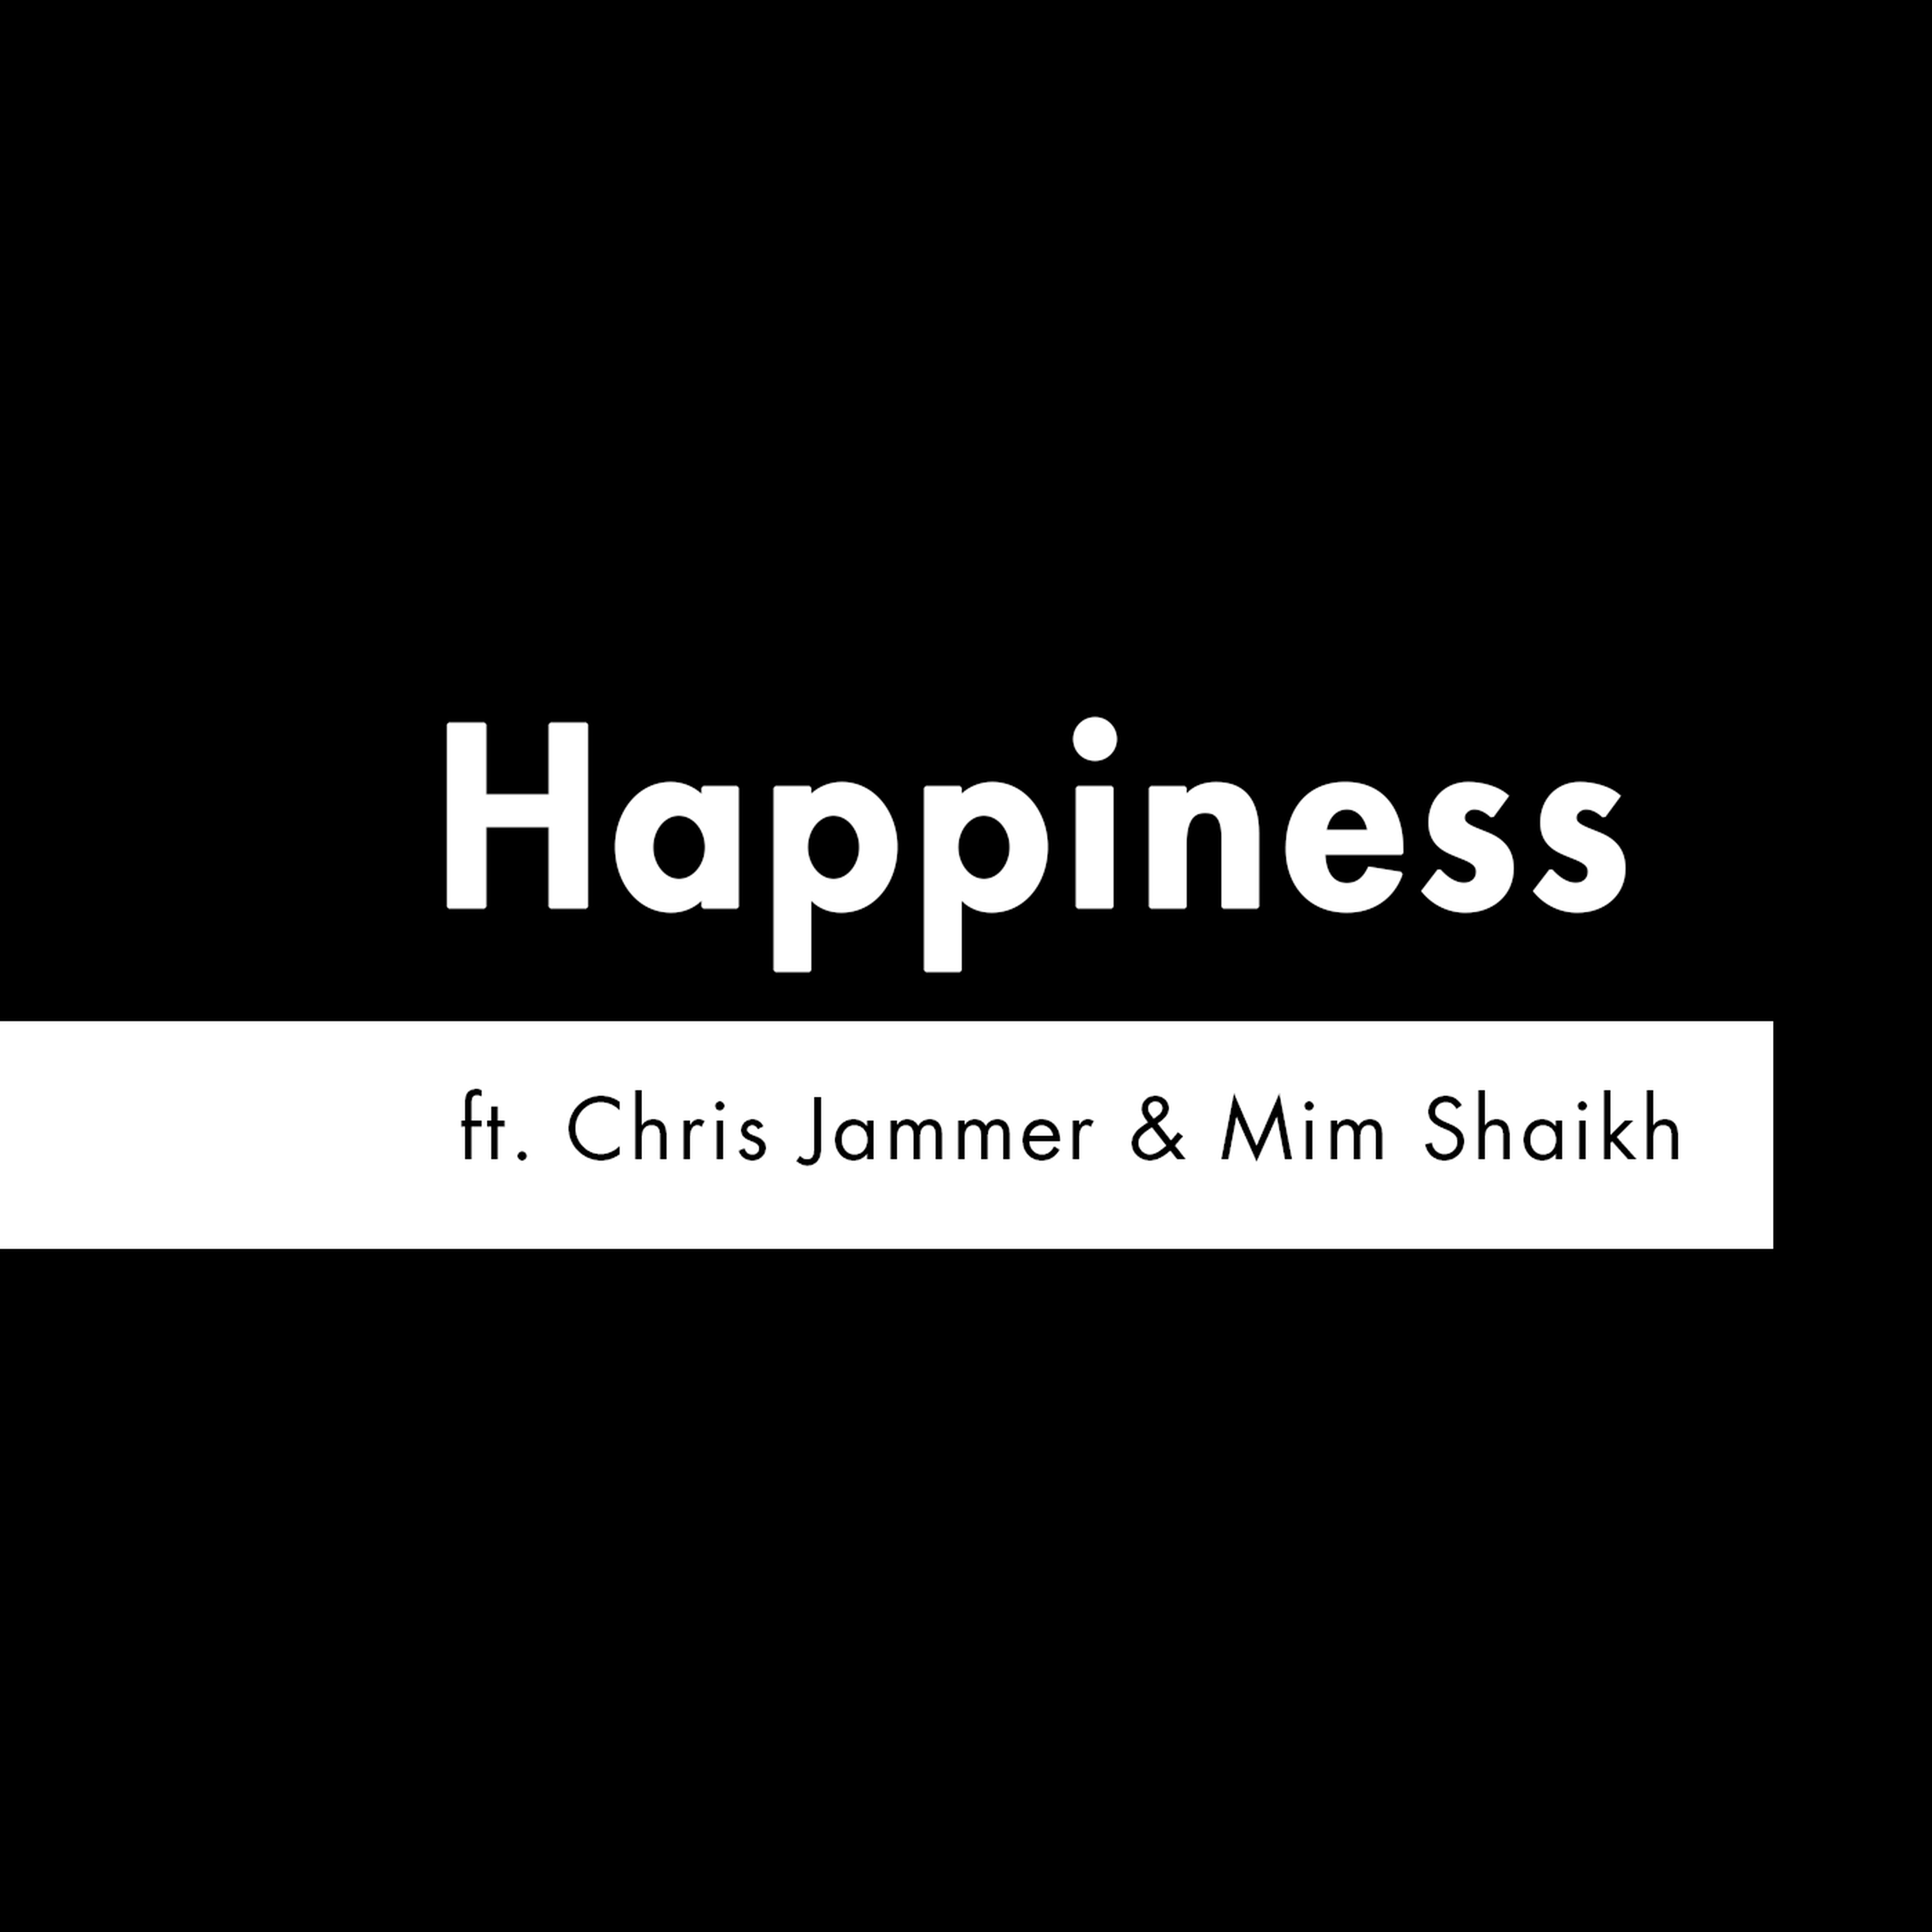 S2 E11 - 'Happiness' feat. Chris Jammer & Mim Shaikh